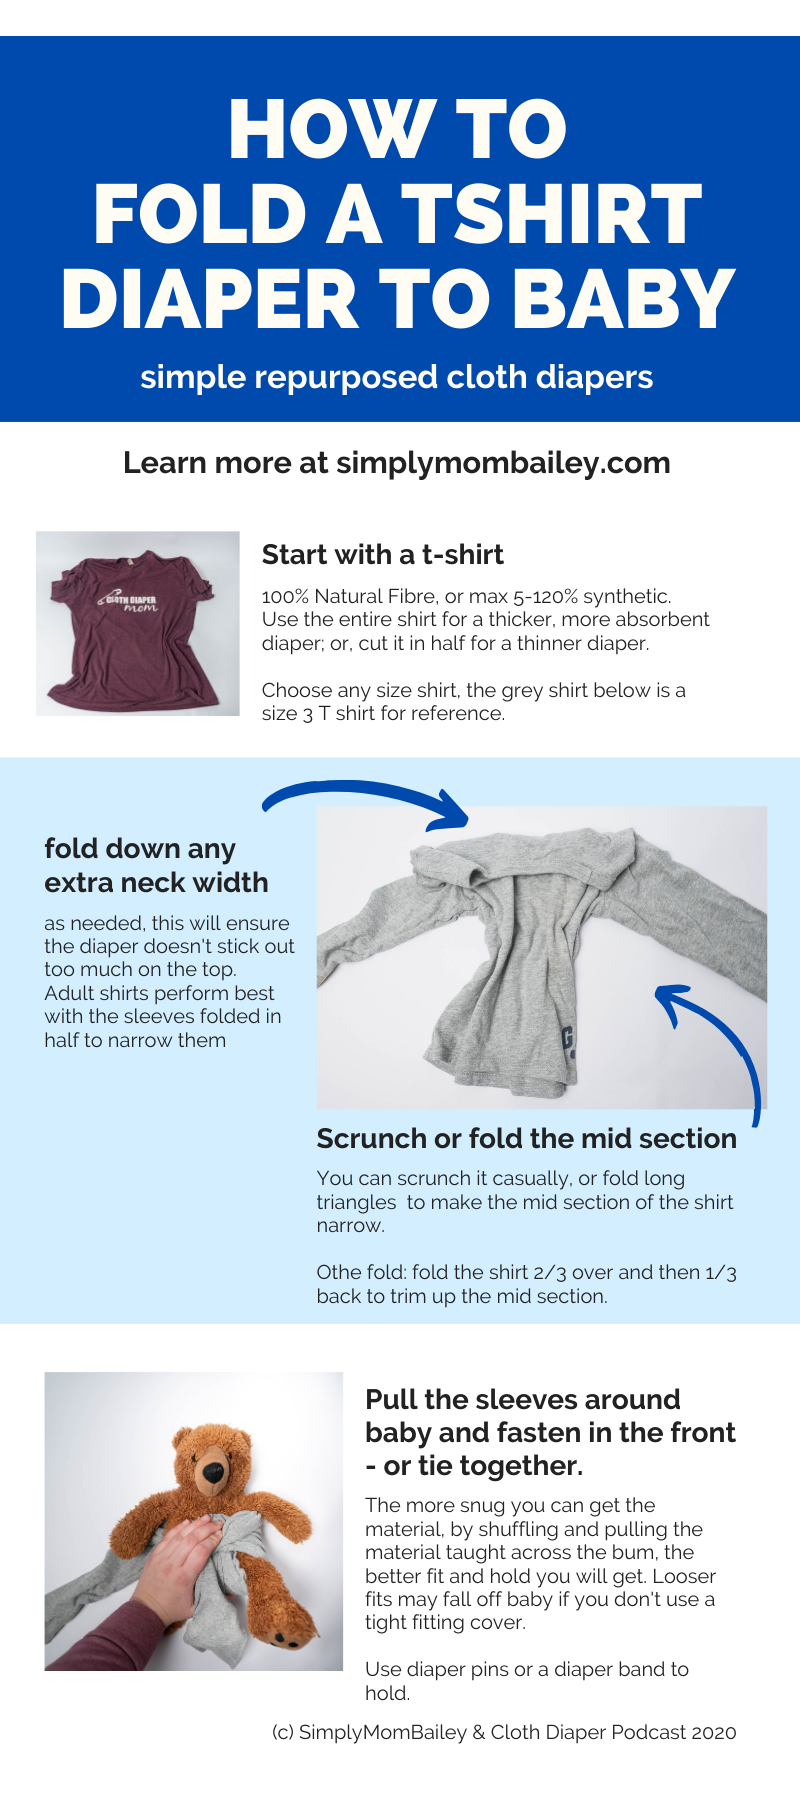 How to Fold a Tshirt onto Baby for a Diaper - Tshirt Diapers